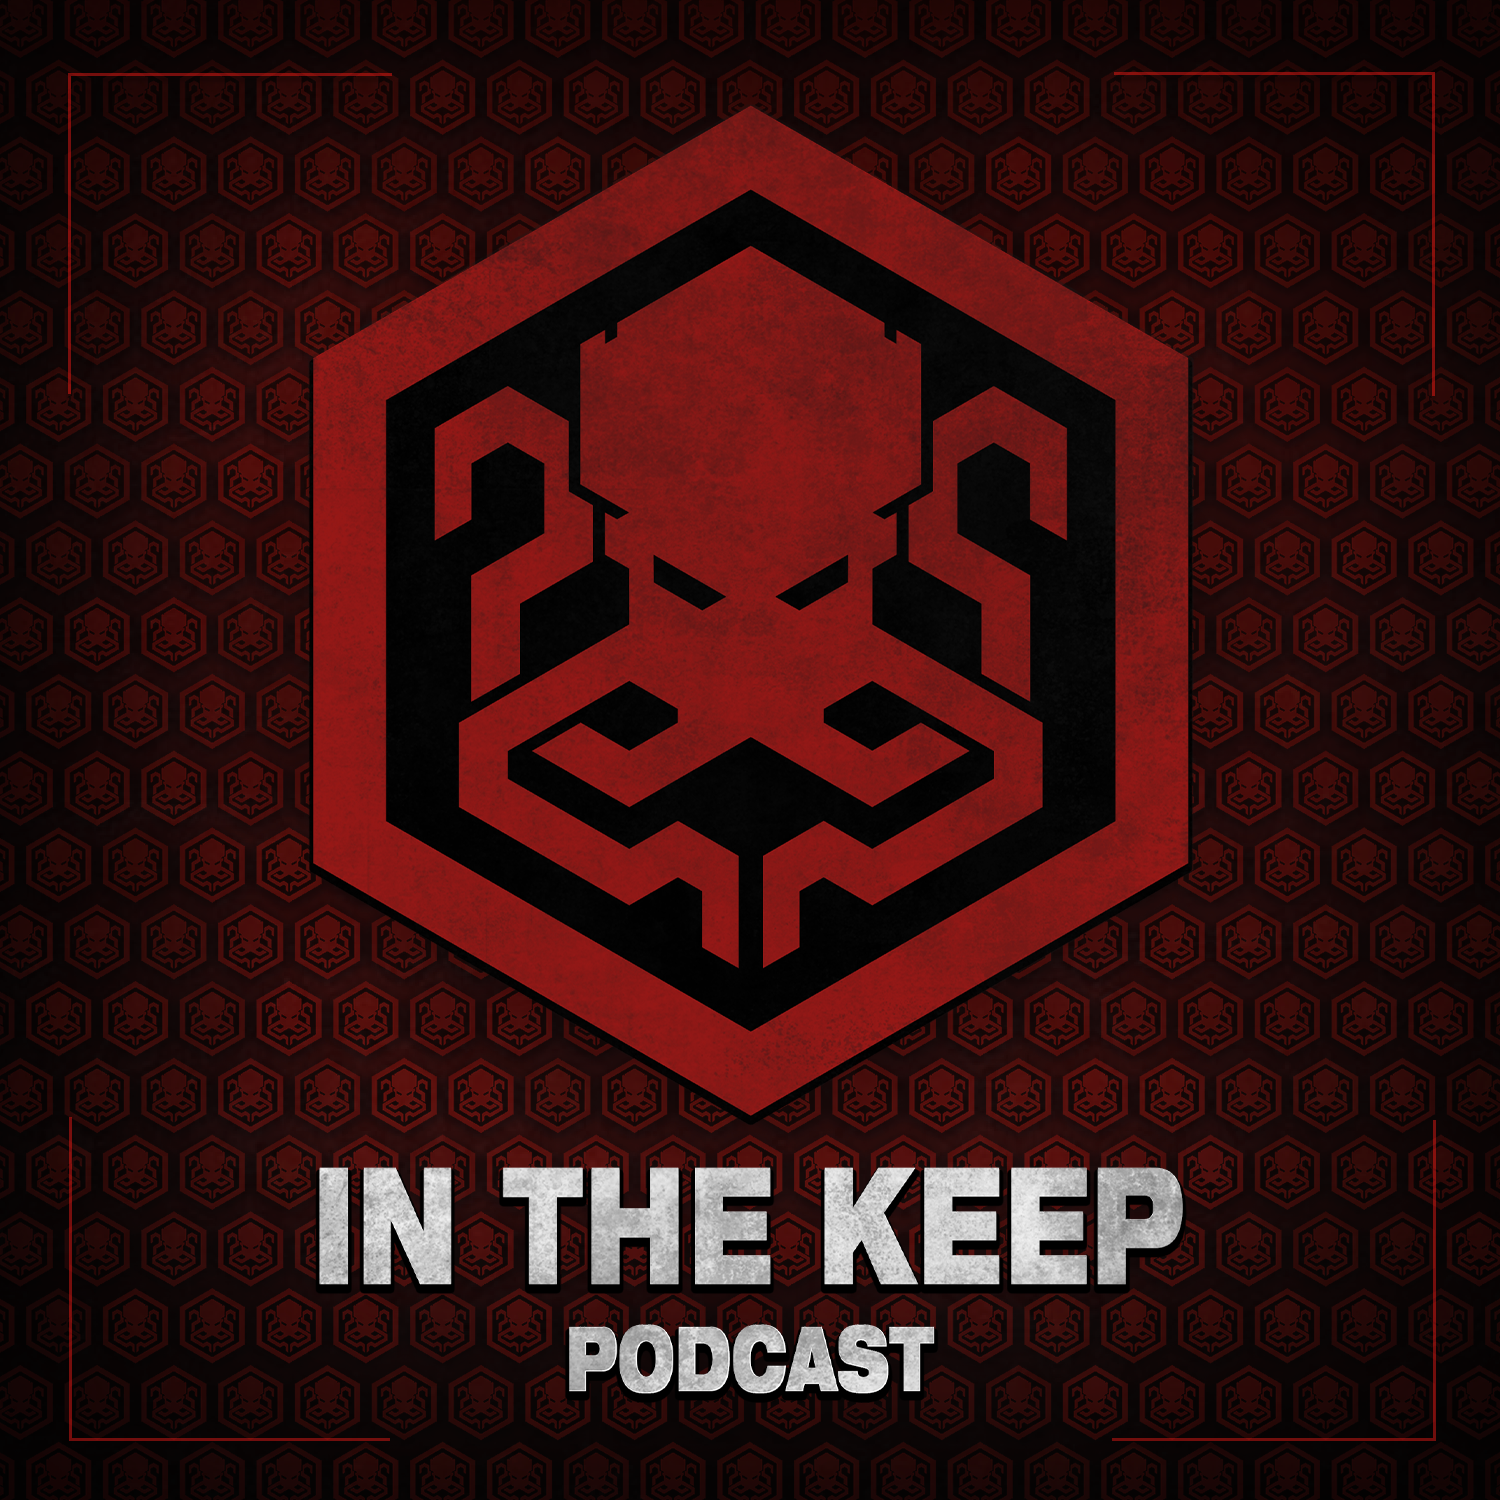 In The Keep Podcast – #87 PapaScho (Modern Retro FPS Games)